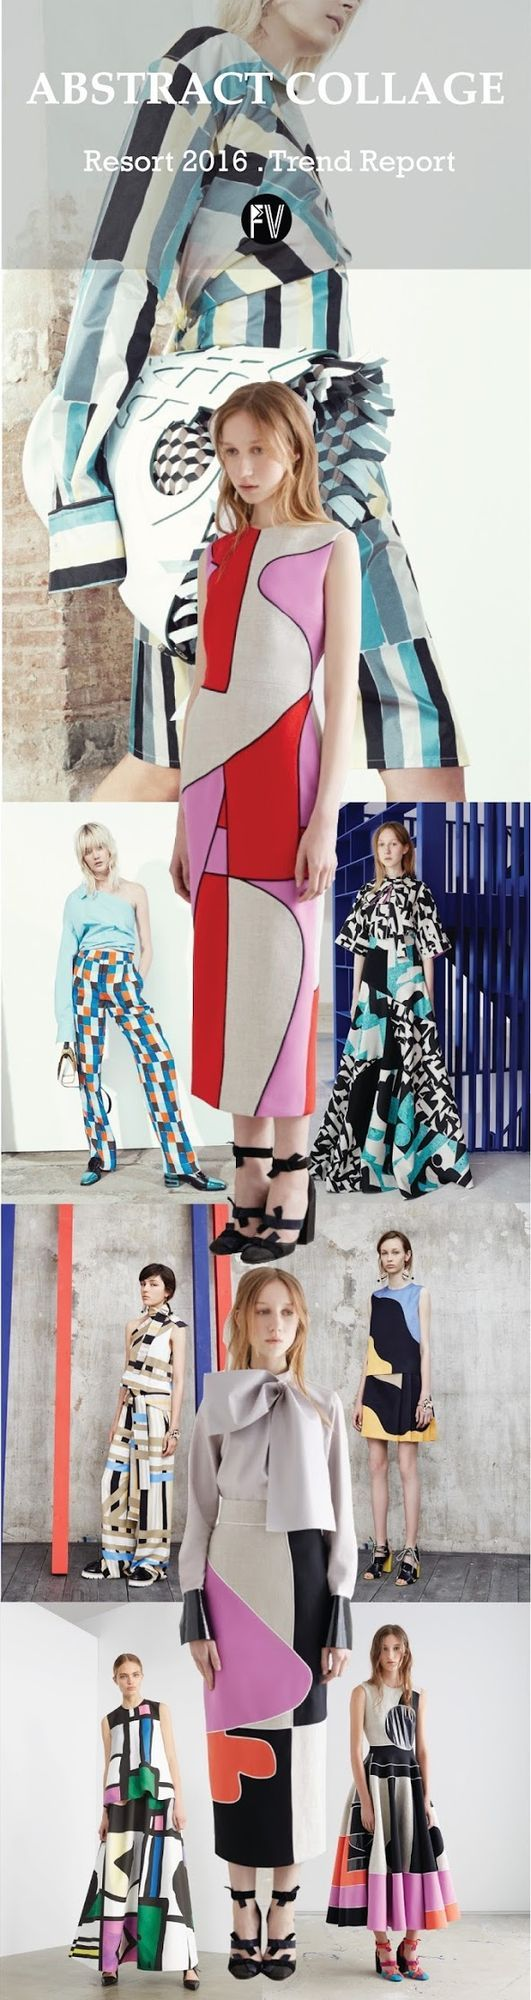 Resort 2016 runway/inspirations/color - Abstract Collage Courtesy . Style.comEmilio Pucci, Roksanda, Emilio Pucci, Roksanda, MSGM, Camilla and Mark, Roksanda